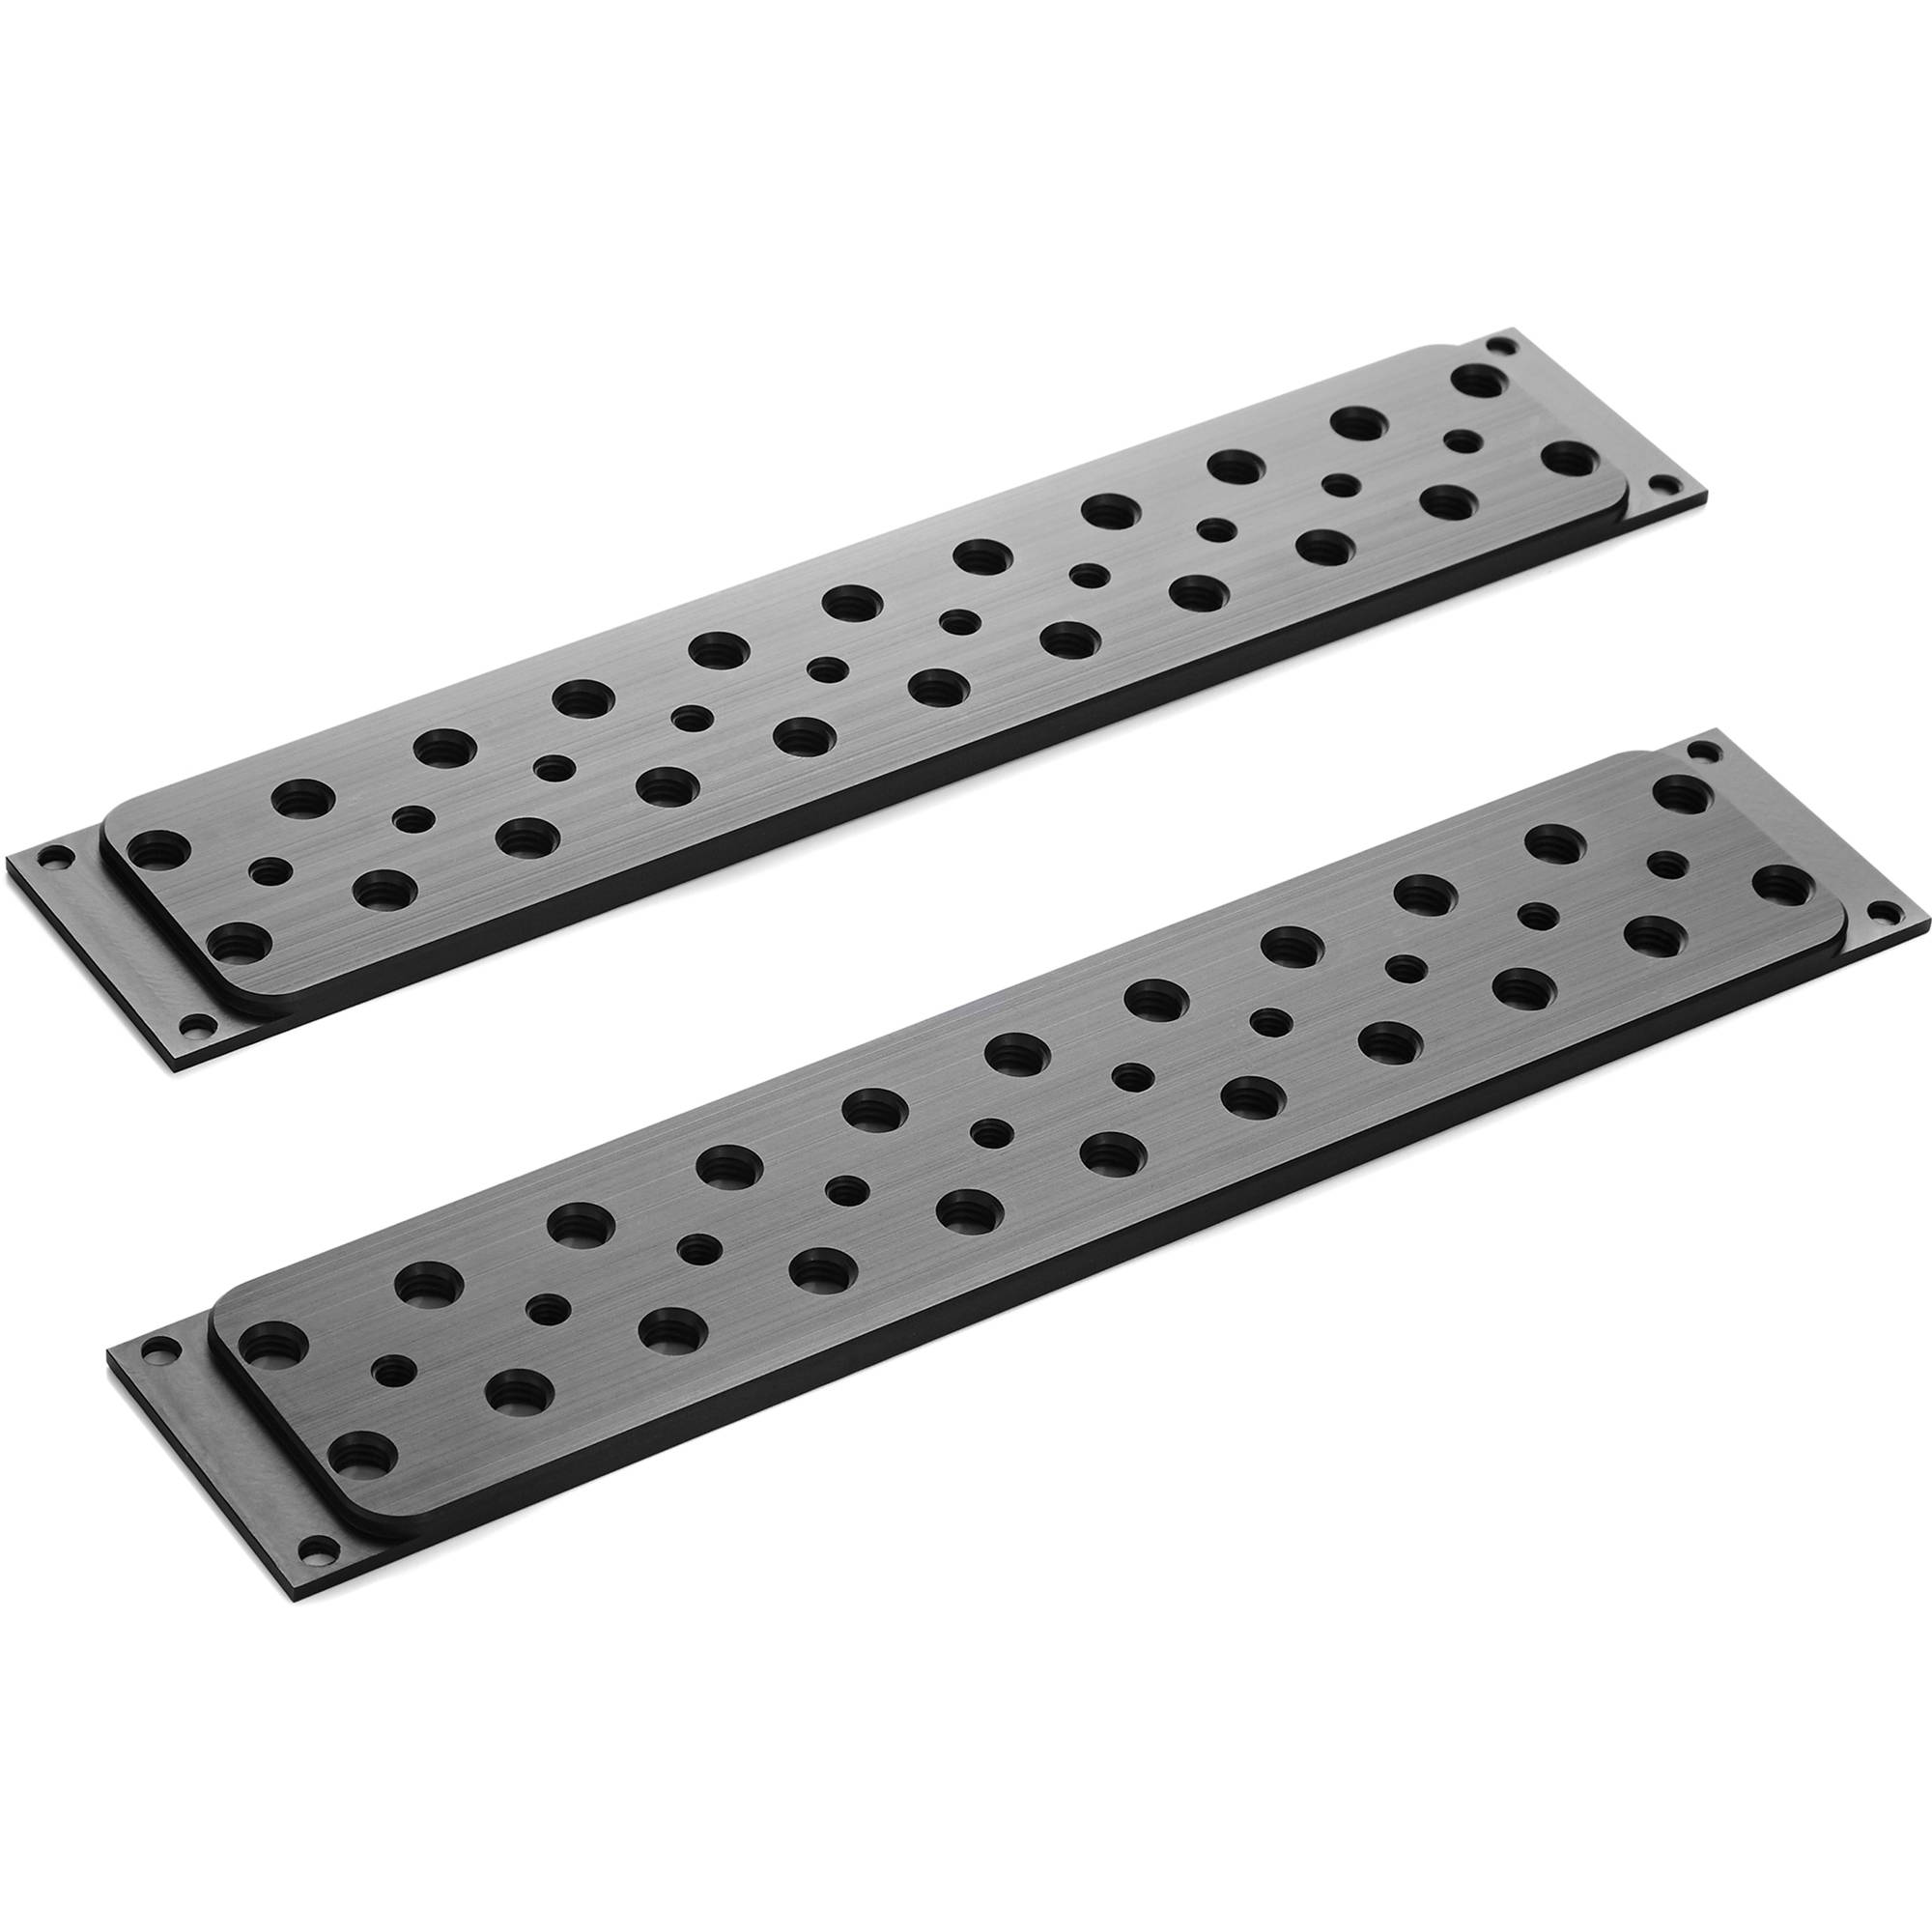 Inovativ Add To Above Apollo 40 Integrated Threaded Rail-Plates, 2 Pieces